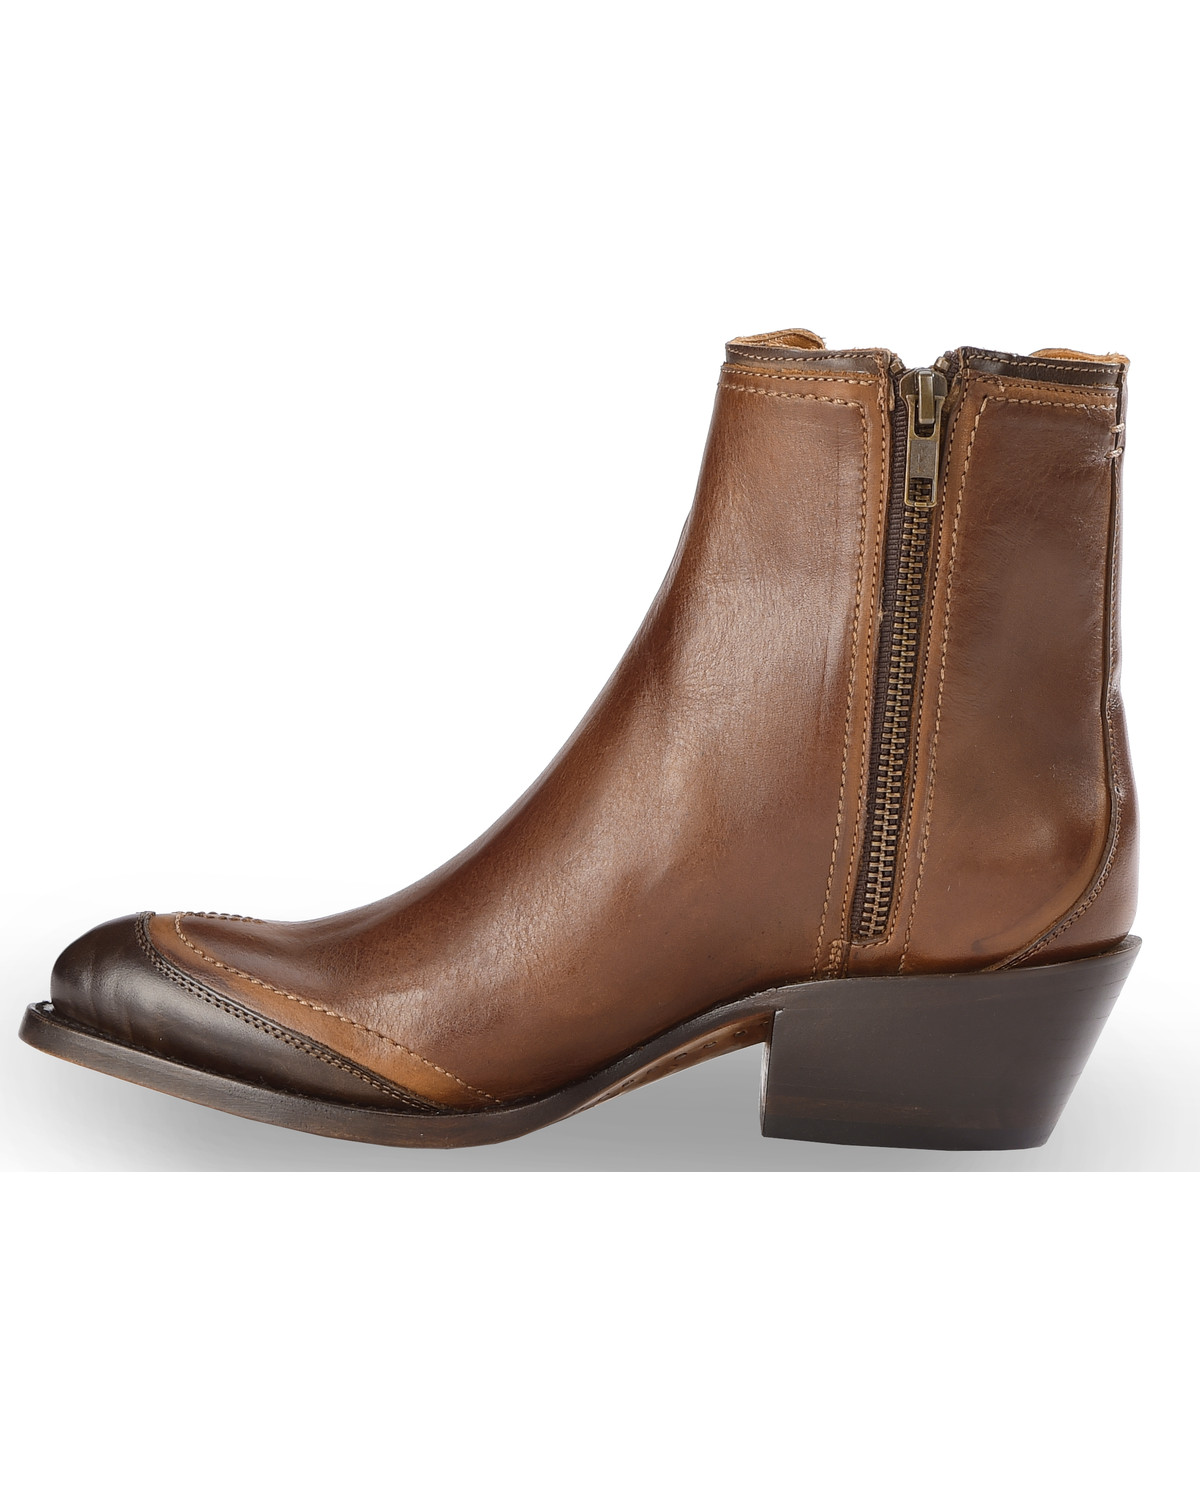 Original You Need To Understand That Finding The Right Boot Will Take Time The Best Way To Shortcircuit The Learning Curve Is To